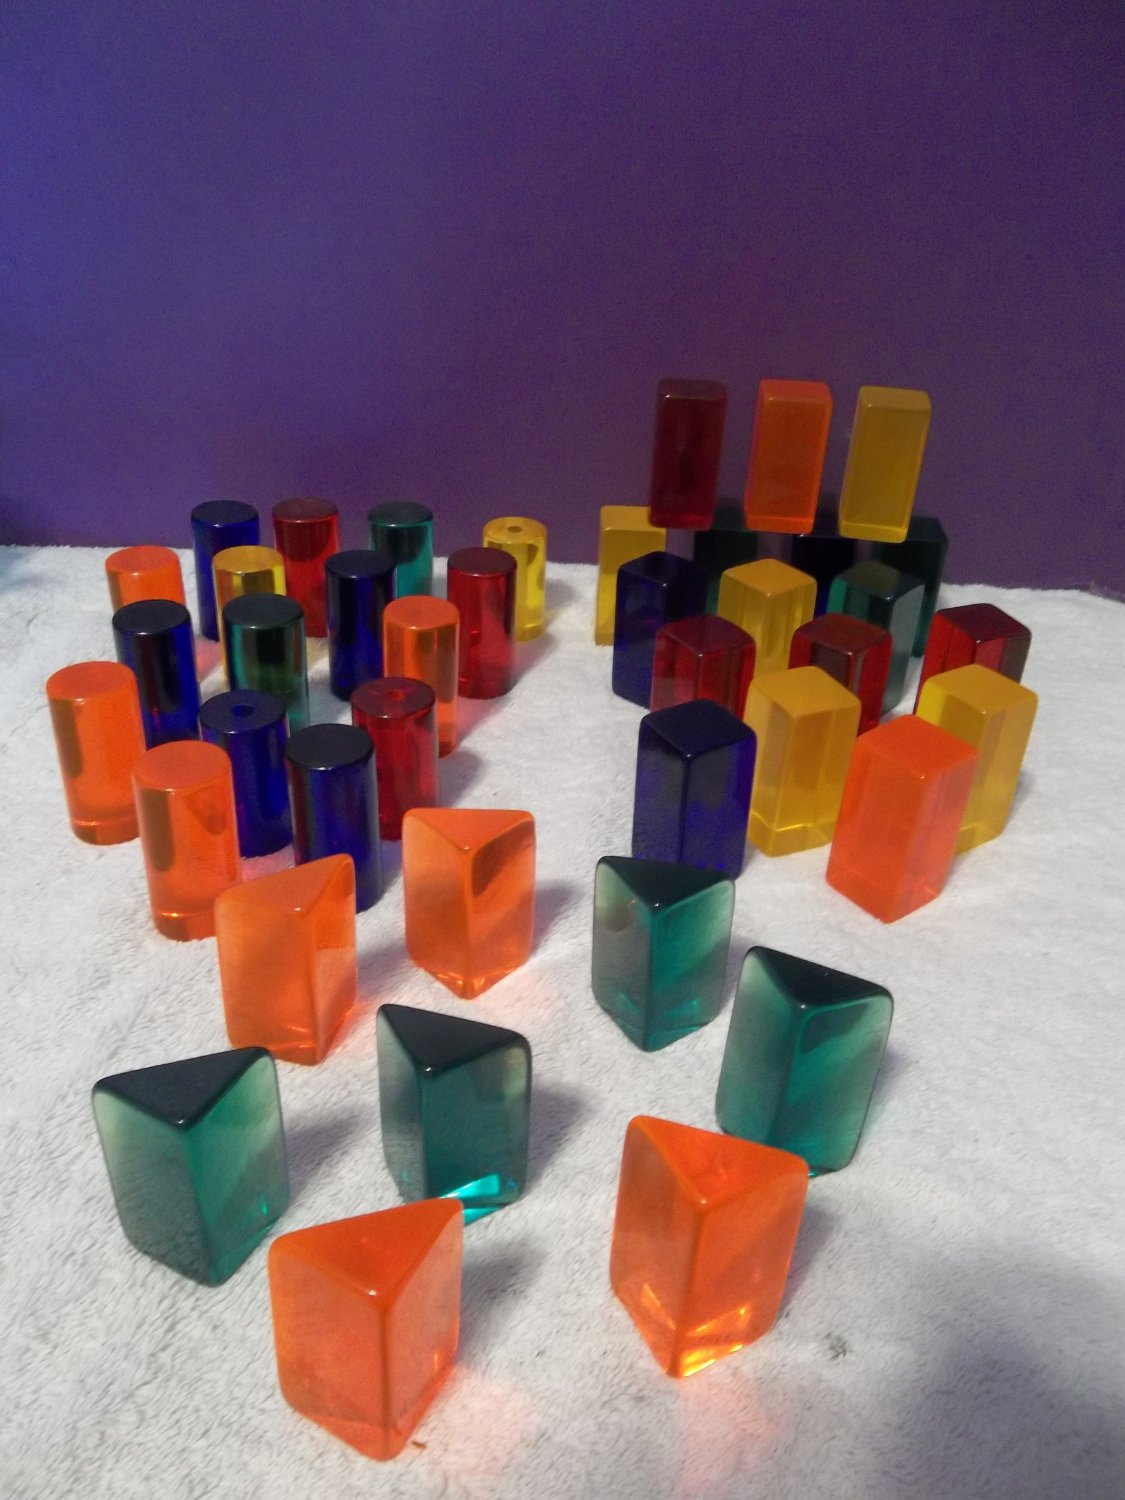 41 Colorful Vintage Modern Lucite Acrylic Blocks Sculpture Pieces Display 764